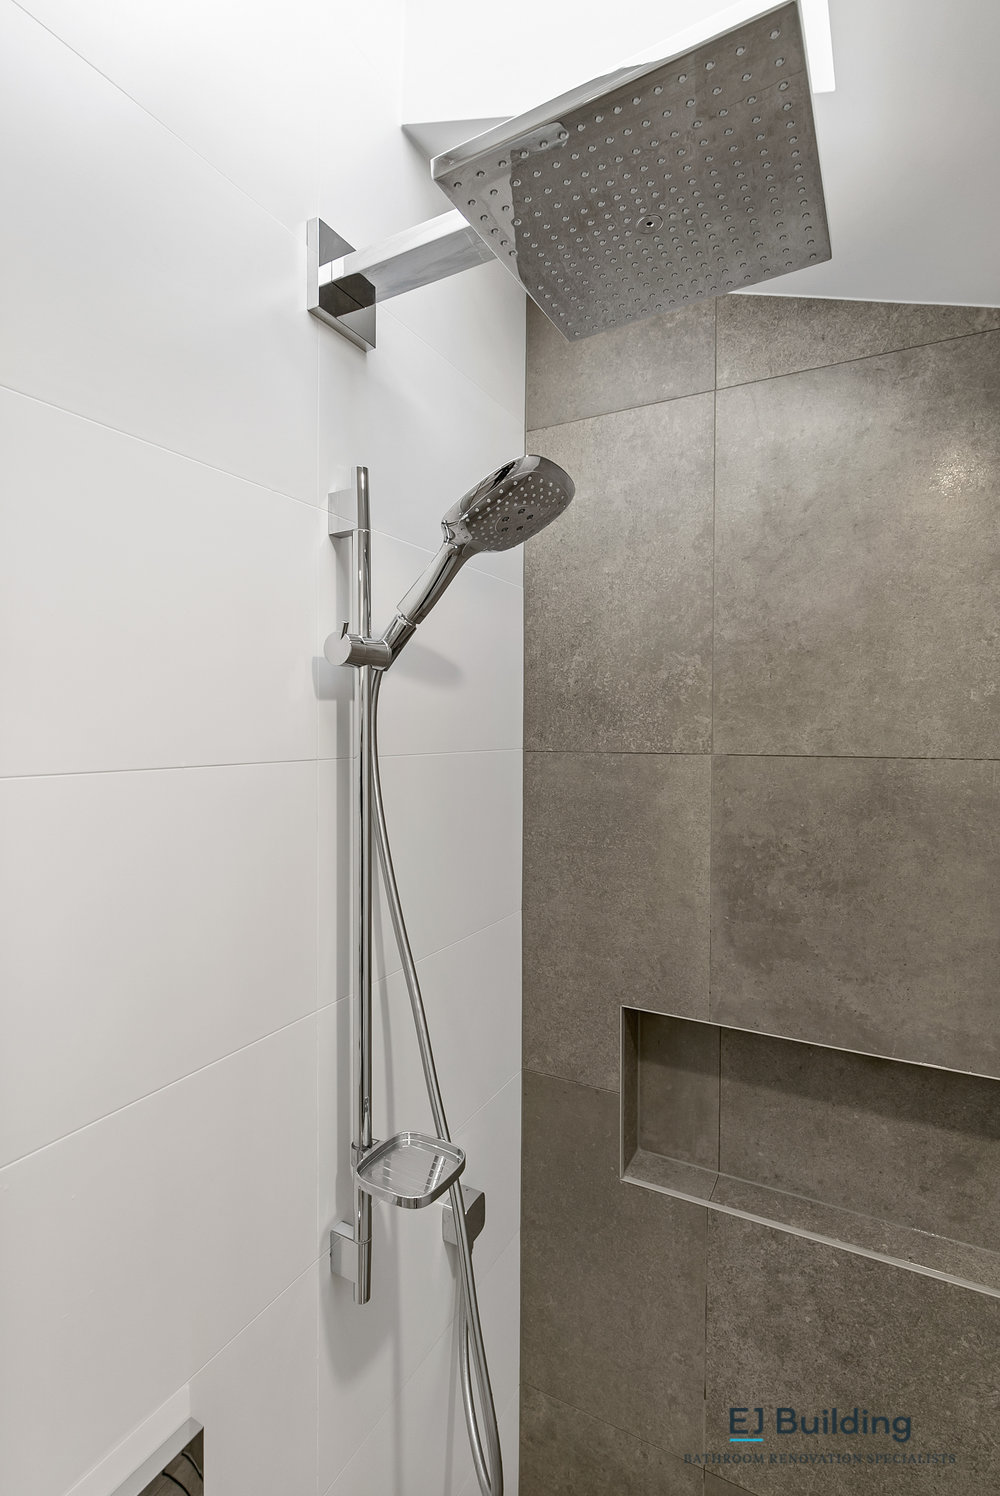 Ellerslie bathroom renovator Auckland. Two shower heads with large dump shower, and classic slide shower . Bathroom Renovation by E J Building Bathroom renovators In Auckland.